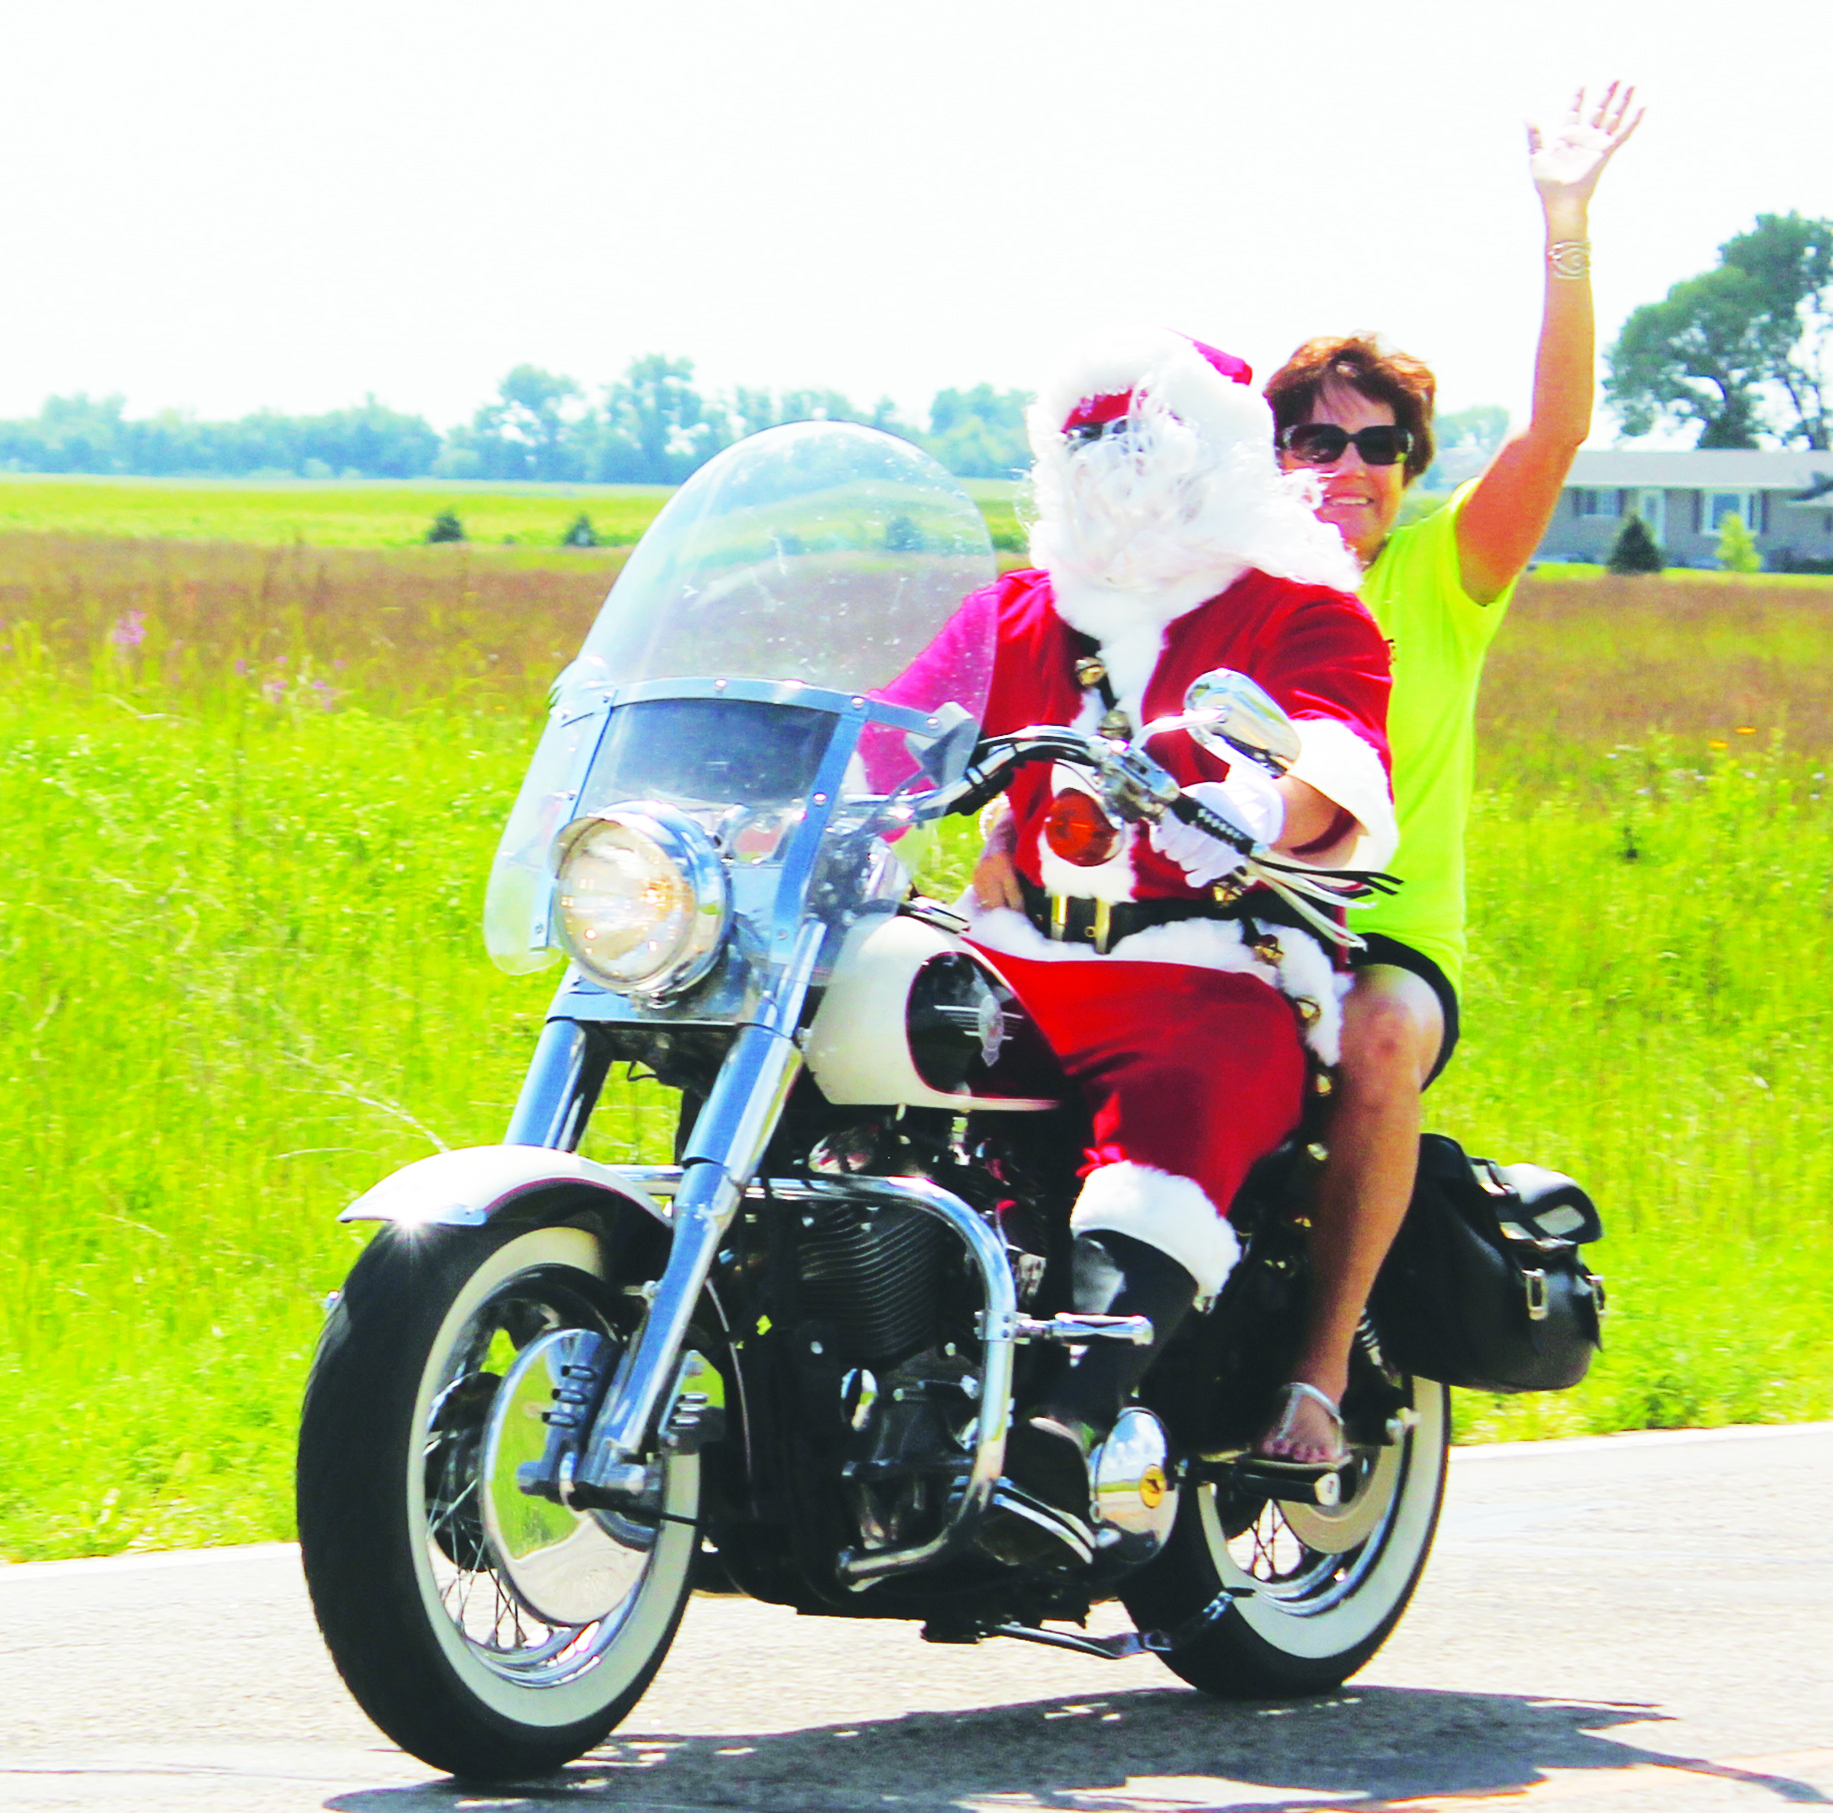 Motorcycles Presiodent Toys For Tots : Toys tots motorcycle fun run still brings people